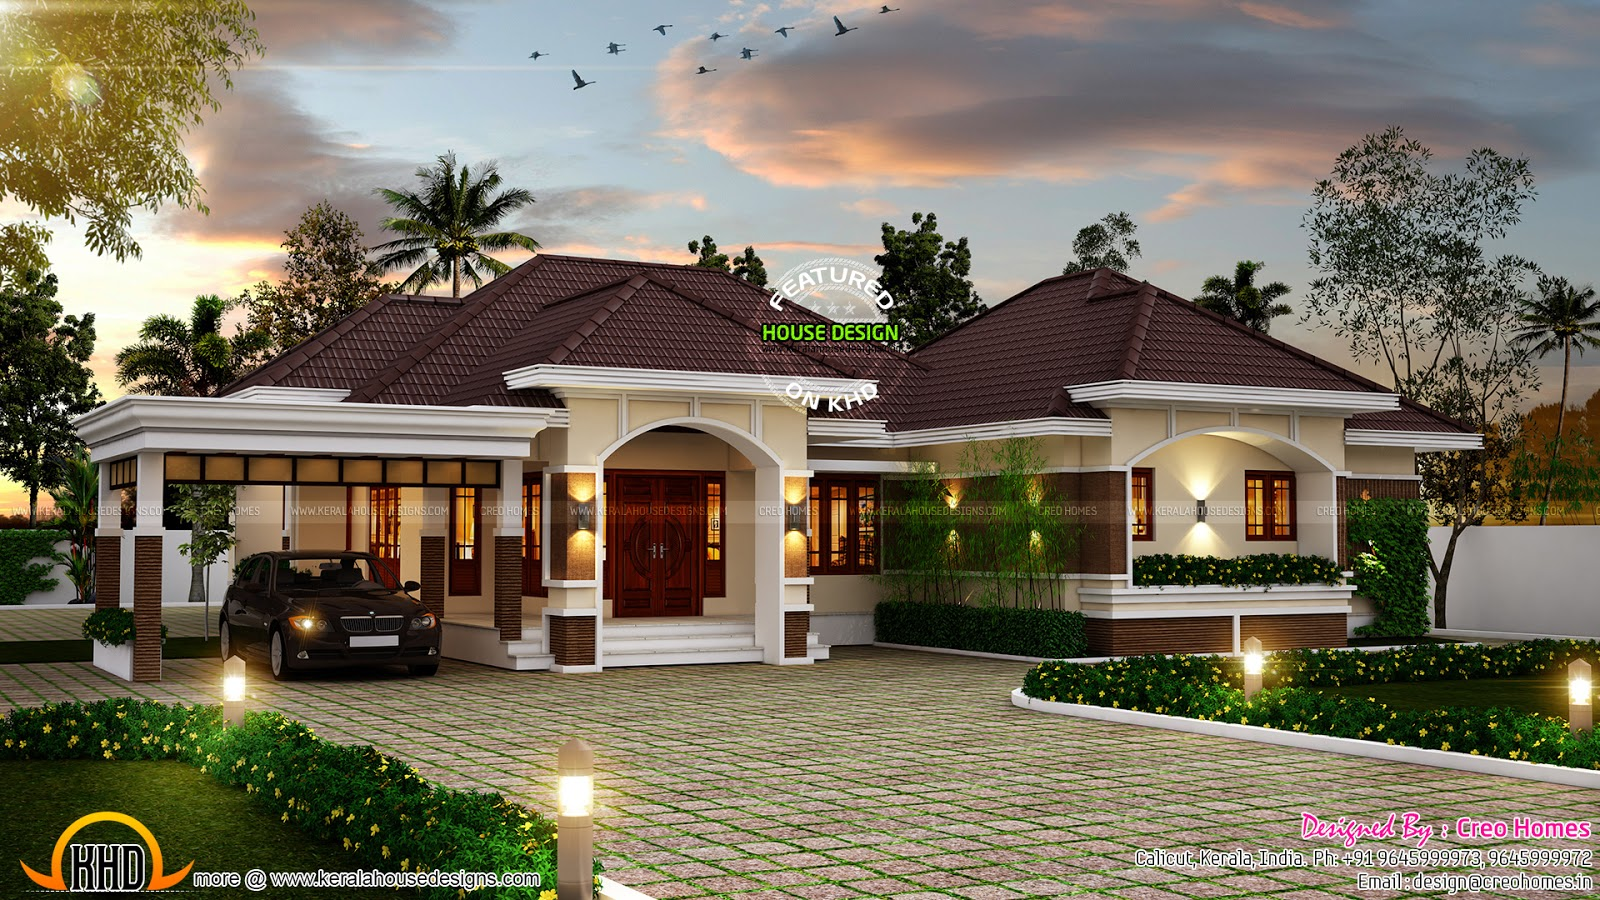 Outstanding bungalow in kerala kerala home design and Decorating bungalow style home